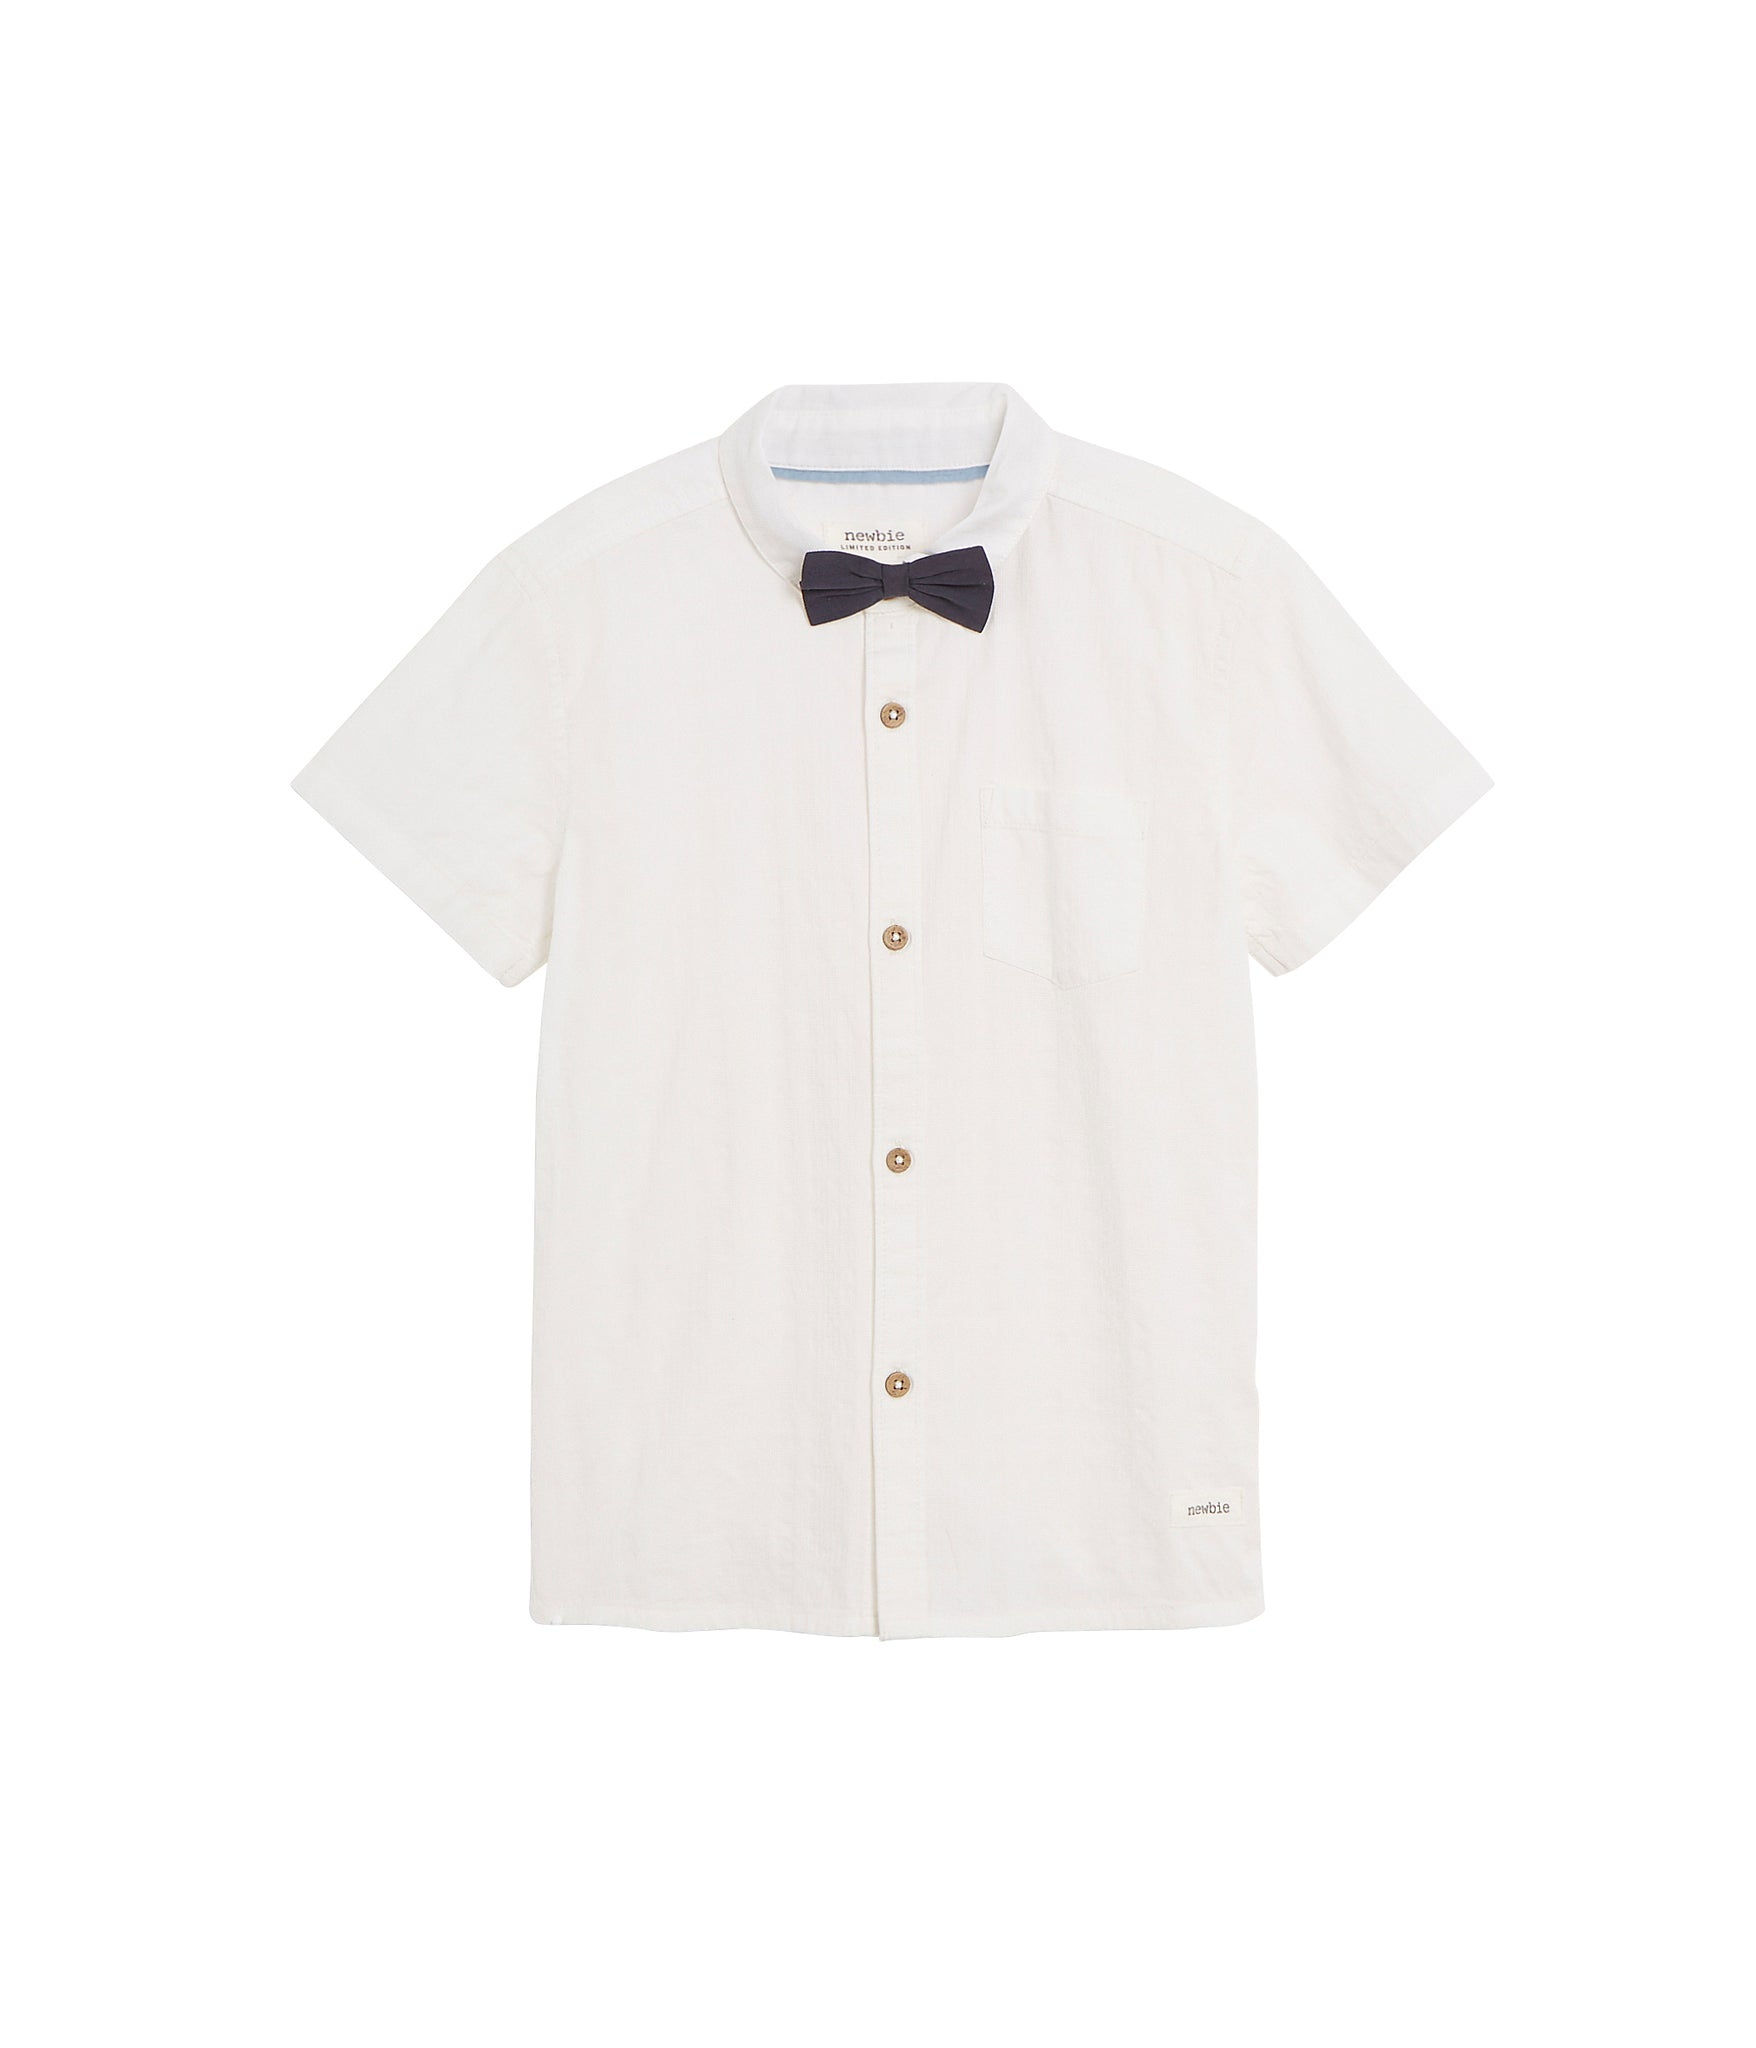 Kids button up shirt with bow tie